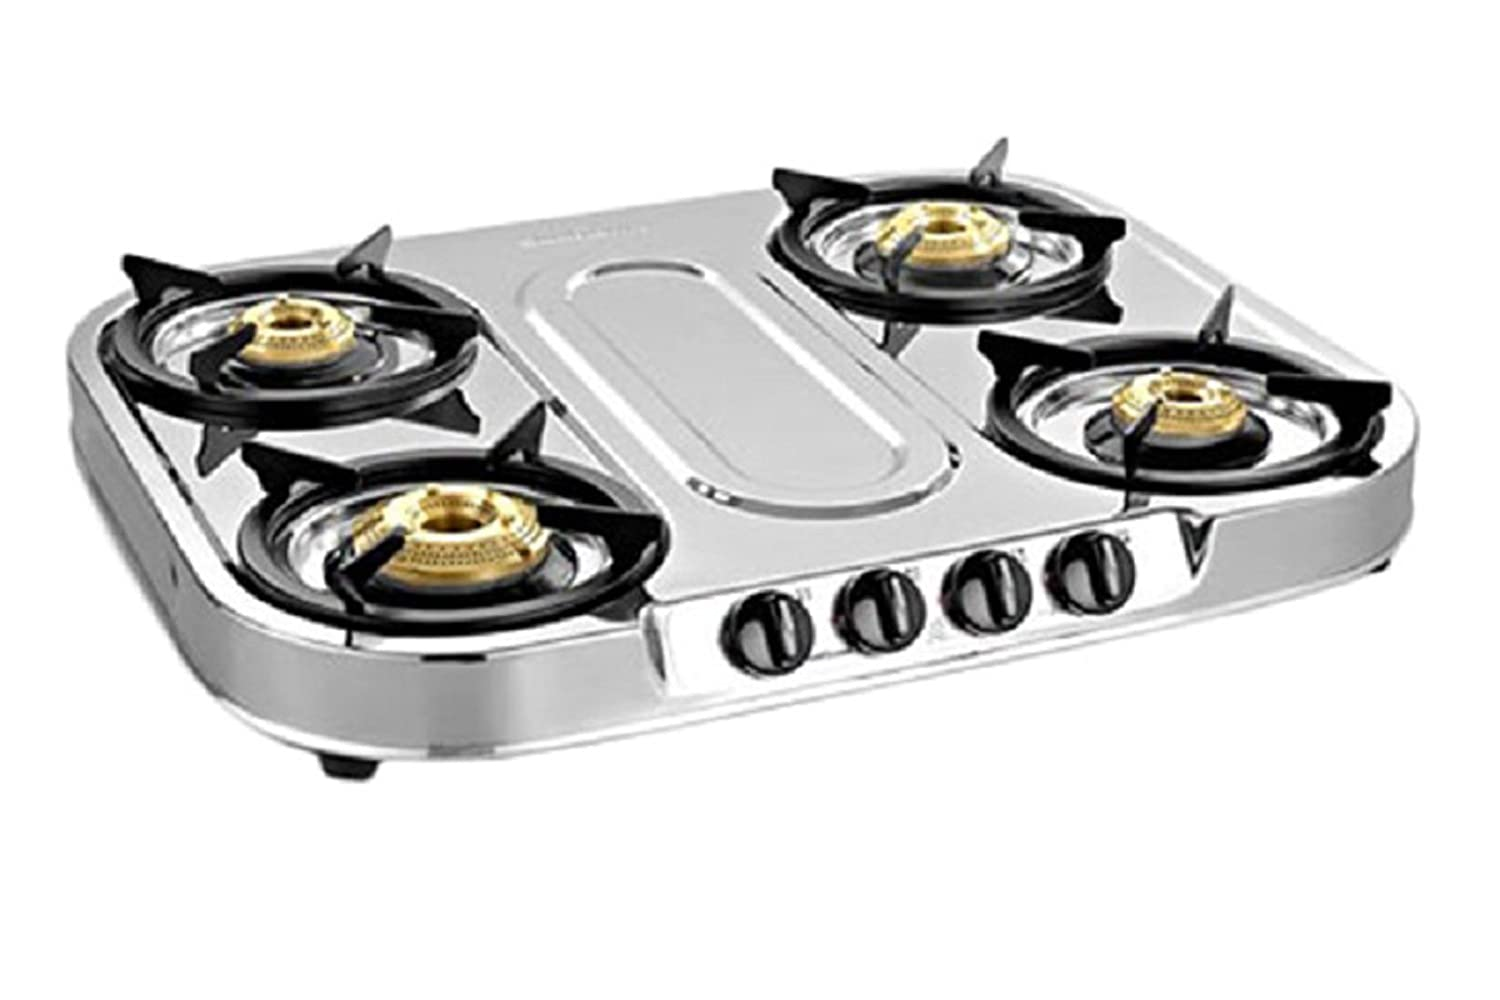 Buy Sunflame Spectra 4 Burner Sprectra Stove Online at Low Prices ...